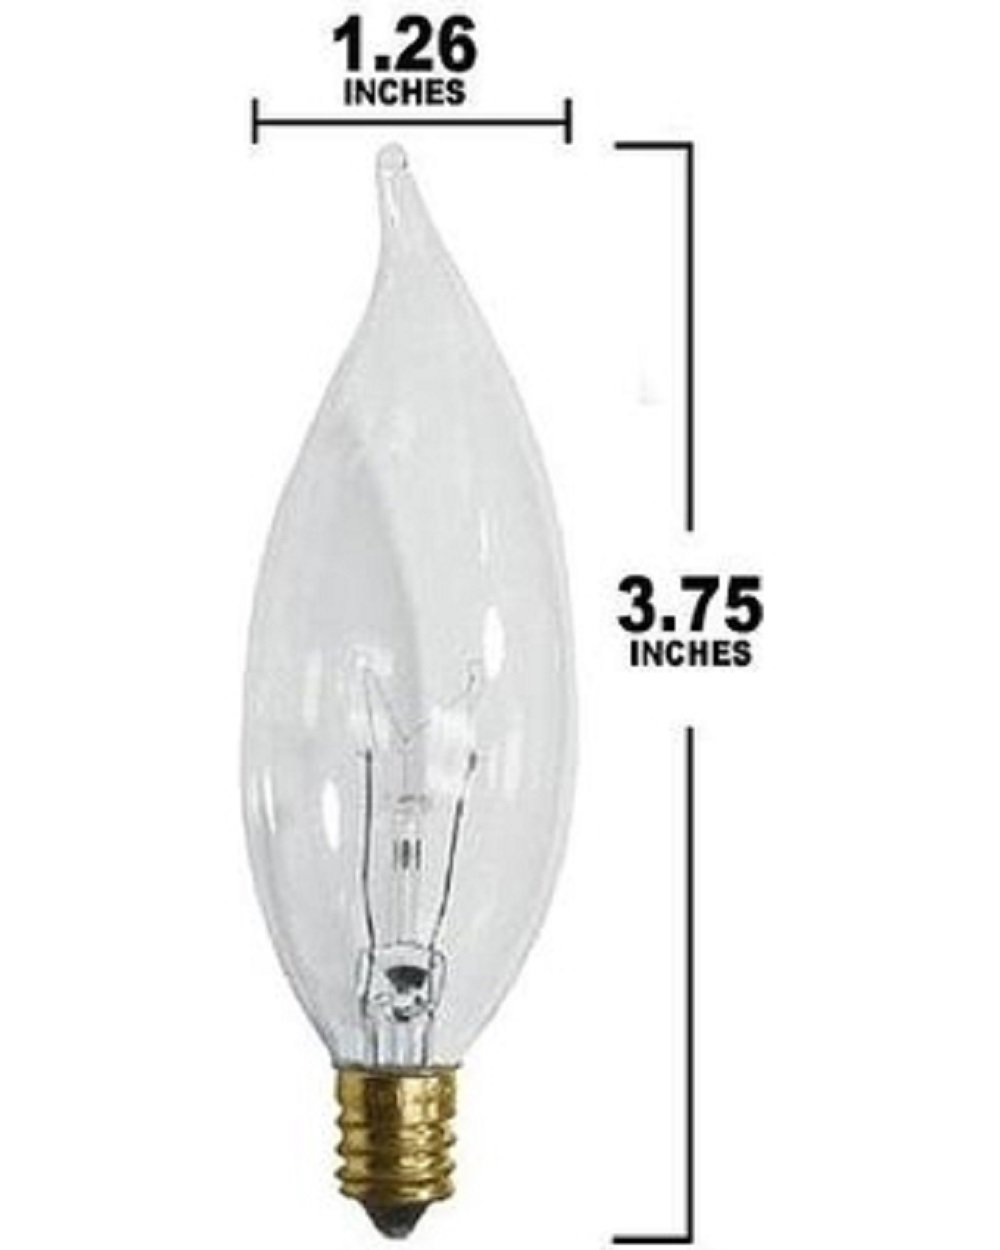 STERL LIGHTING (Pack of 12) 60 Watt Clear Flame Shaped Incandescent Chandelier Light Bulb, Candelabra Base